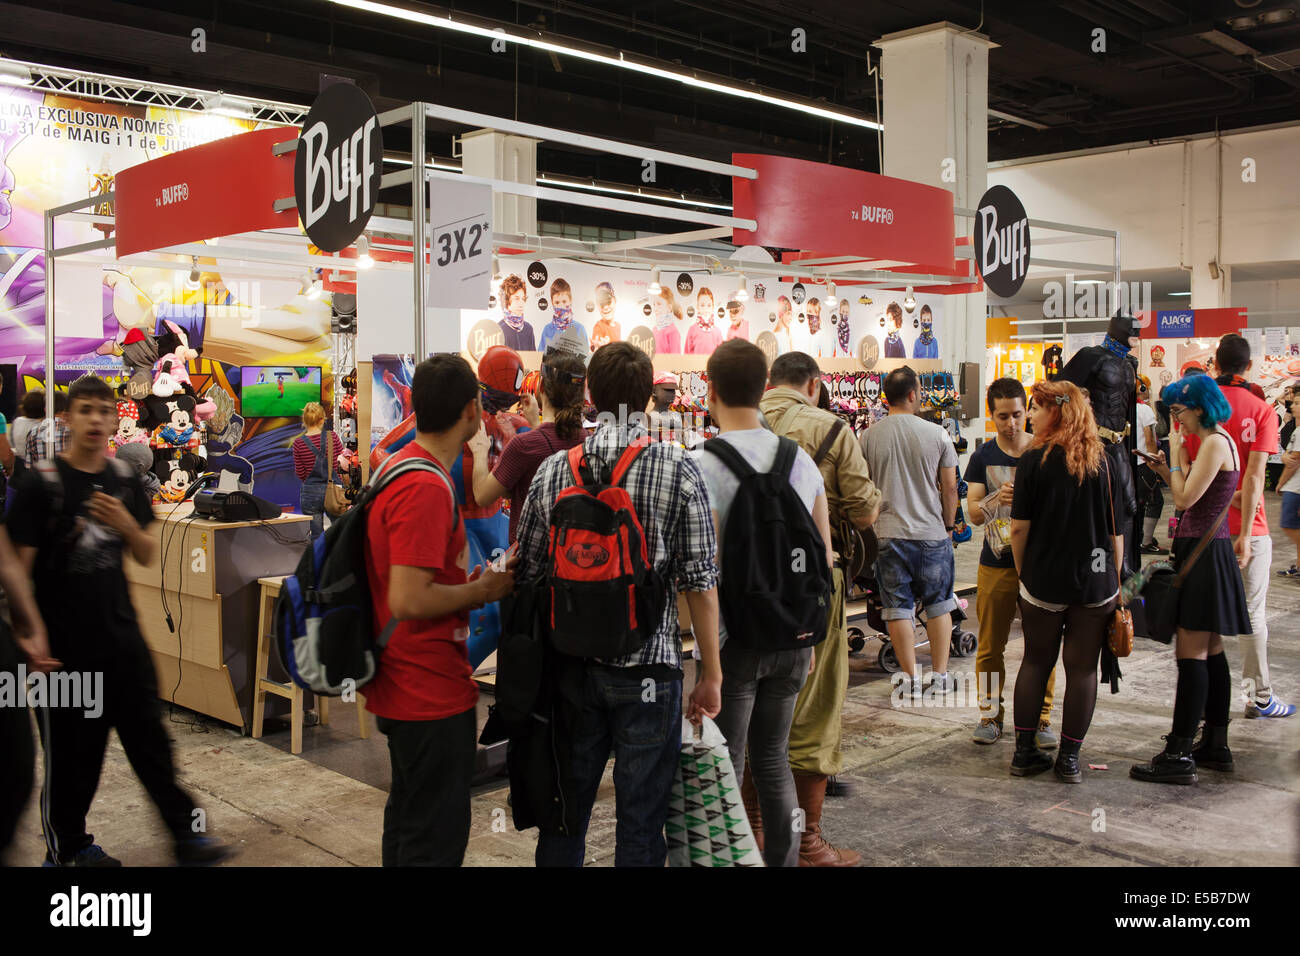 People attend Comic Con on May 17, 2014 in Barcelona, Catalonia, Spain. - Stock Image